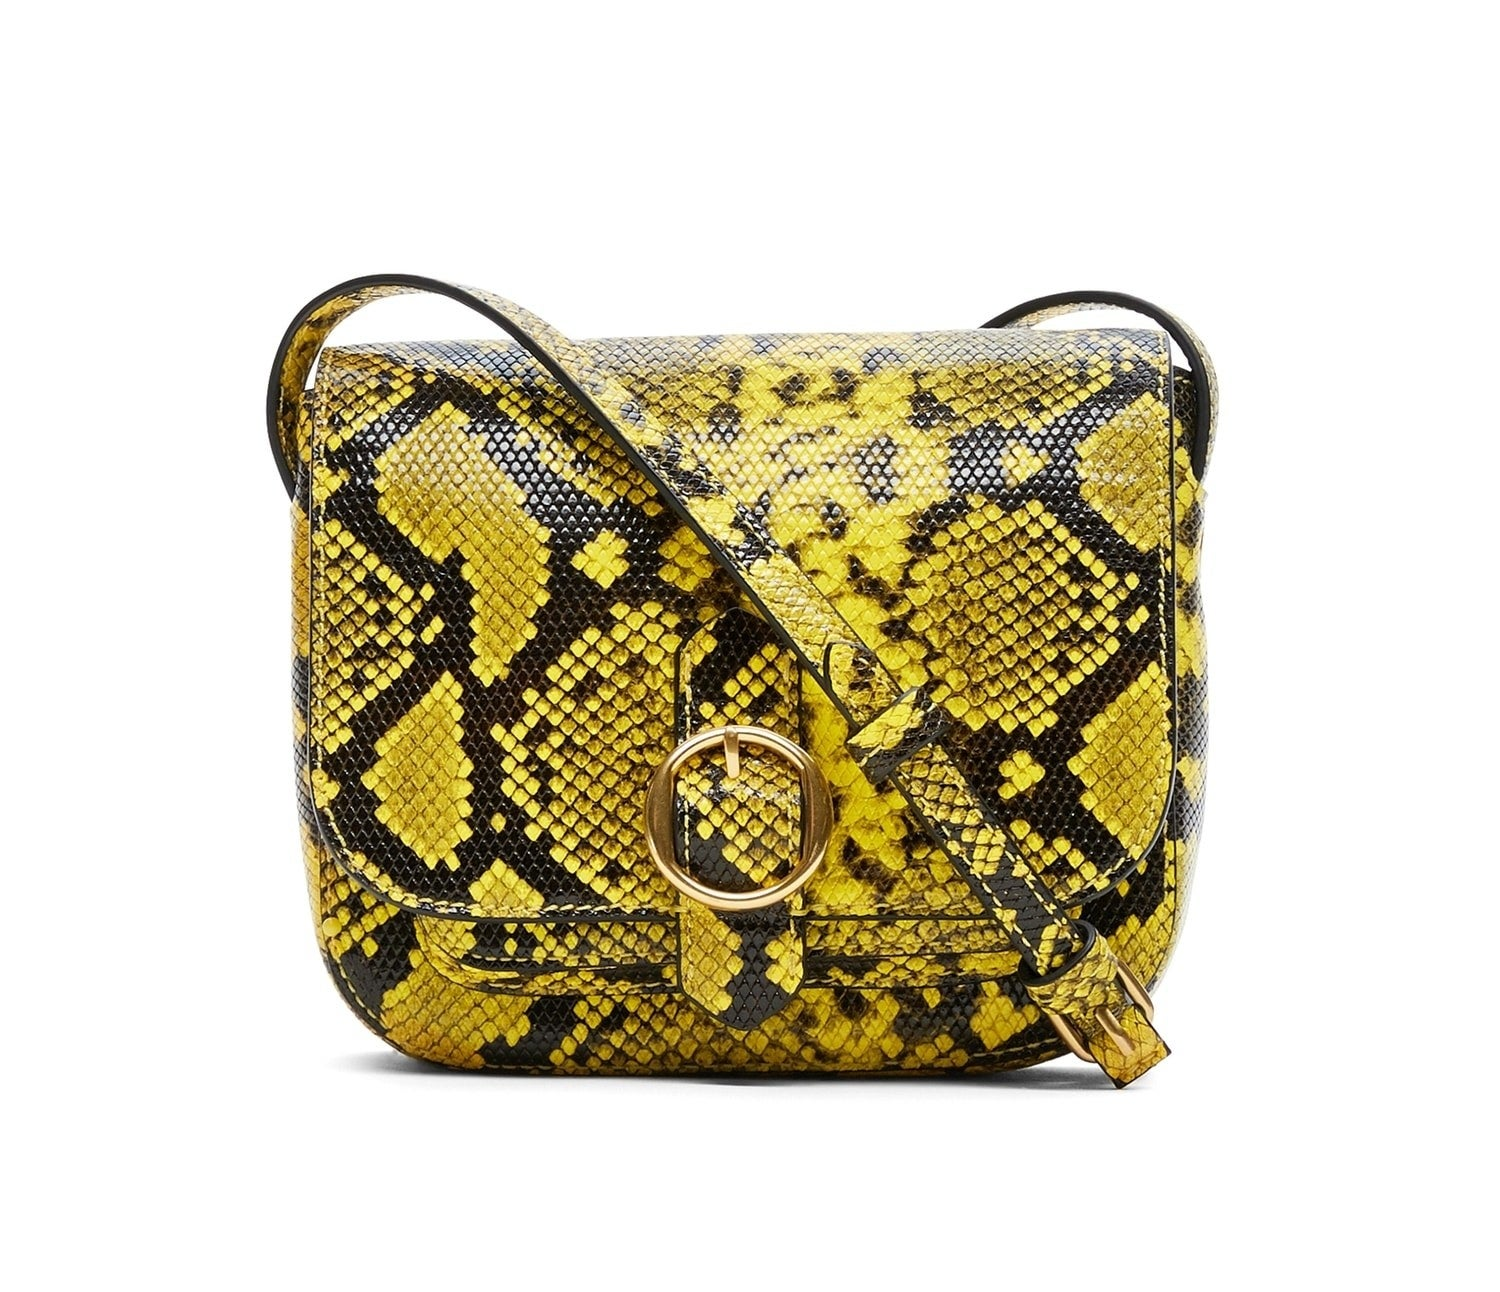 The saddlebag with a round buckle, thin strap, and a yellow and black snake print